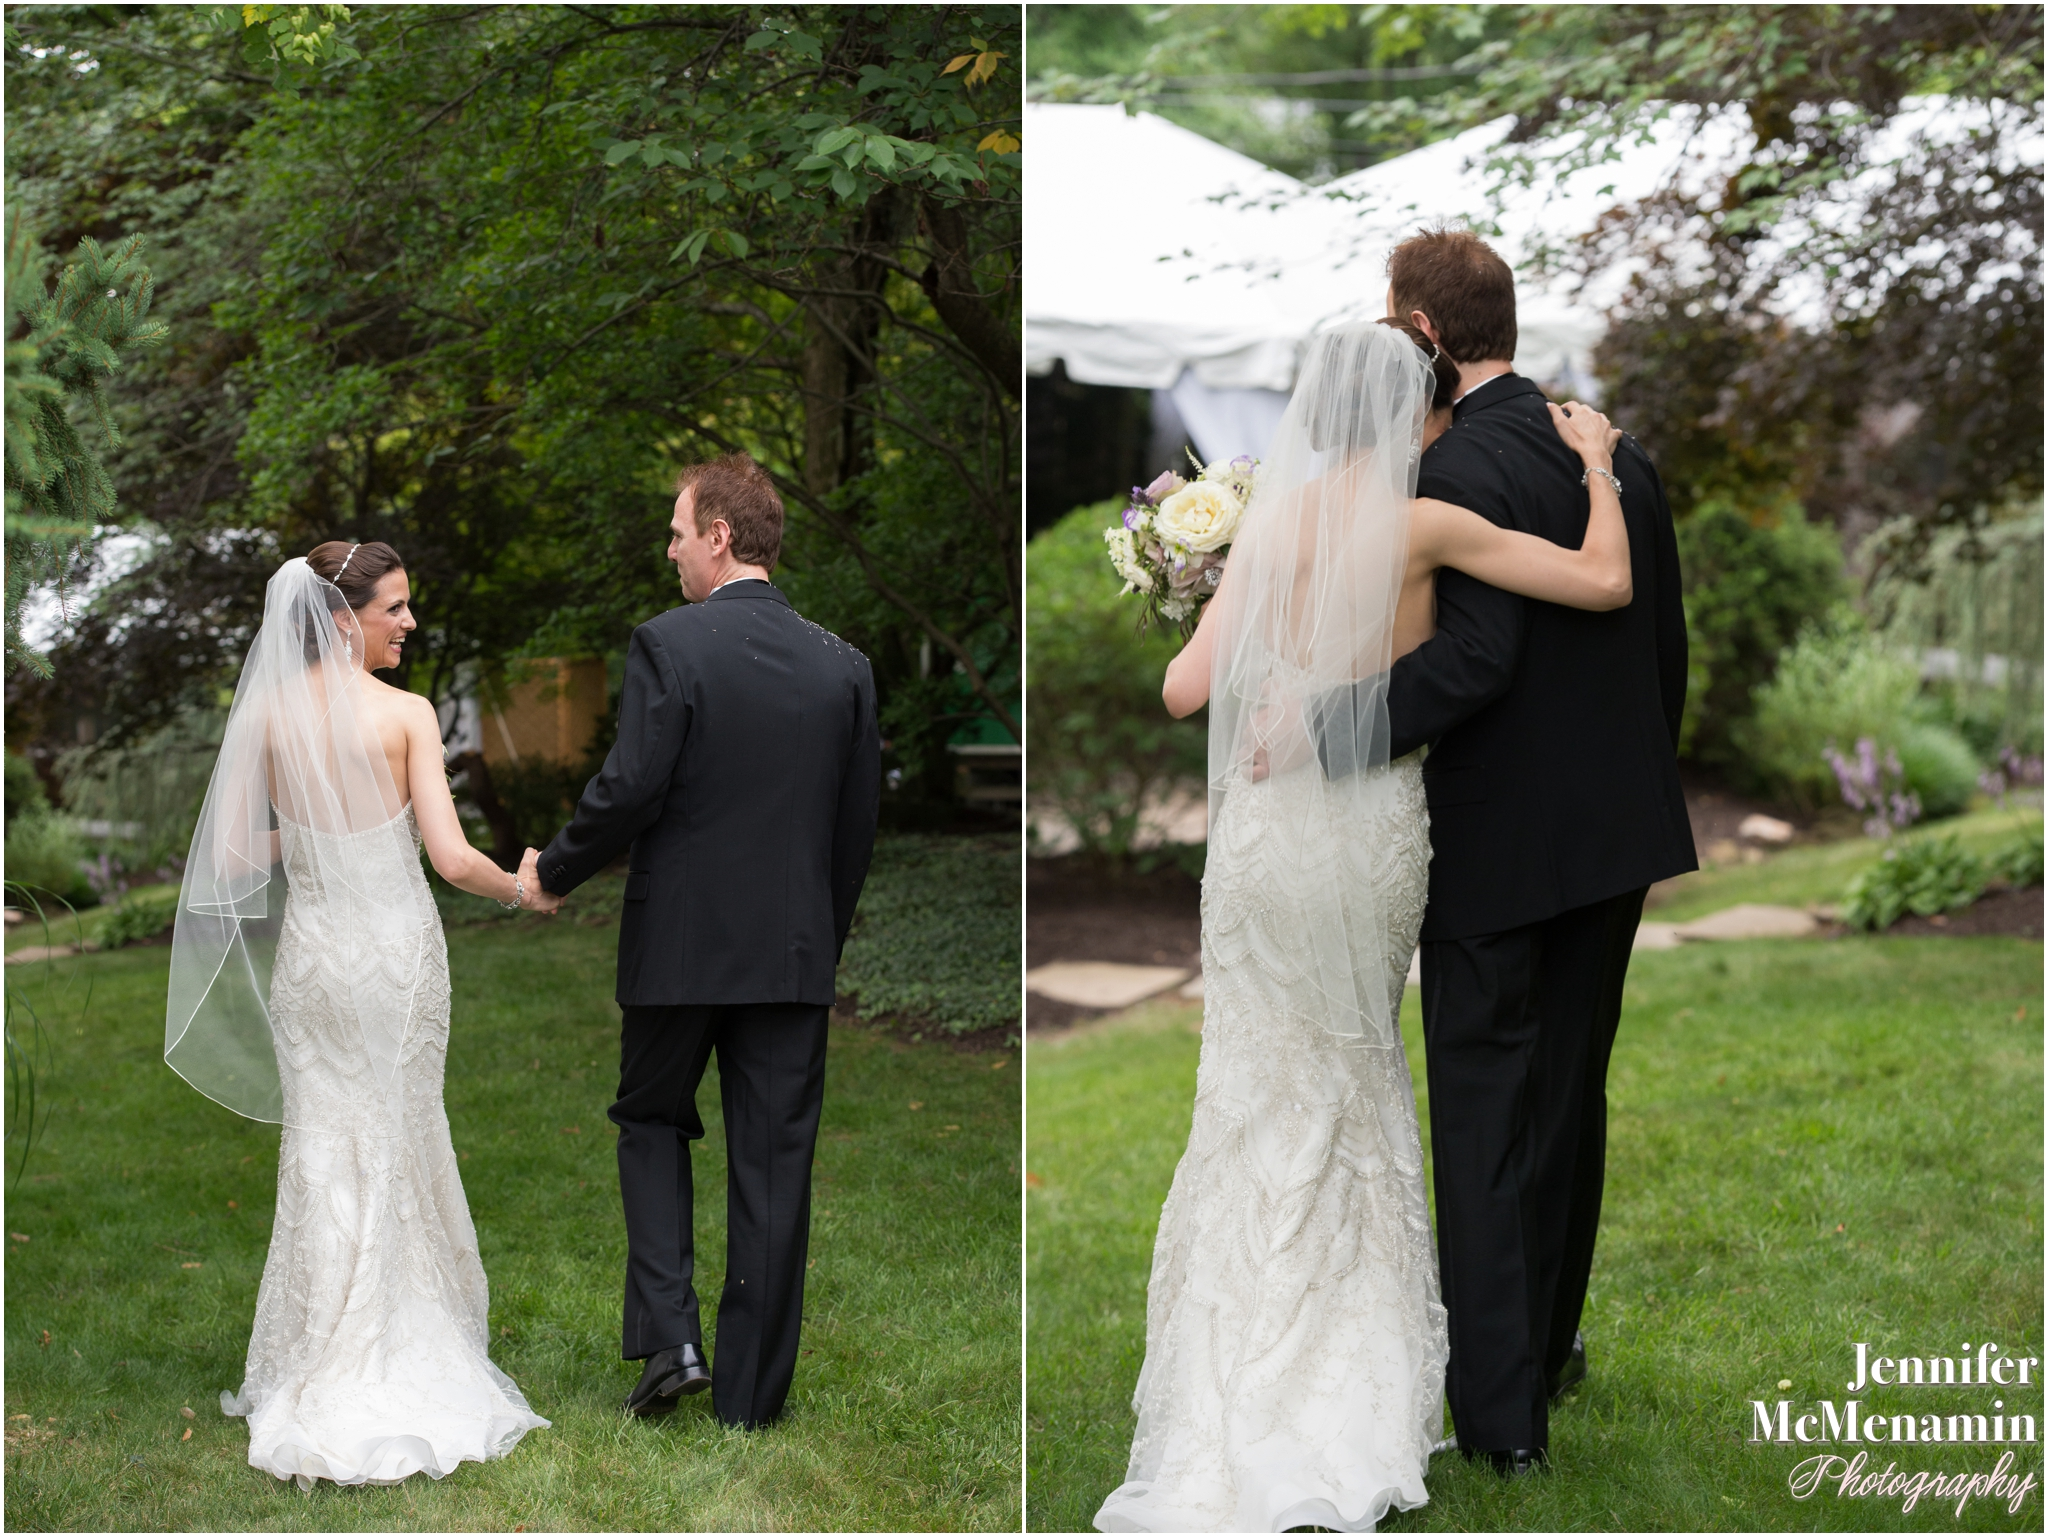 047-CoughlinPomper_02284-0470_JenniferMcMenaminPhotography_Private-Residence-Roland-Park_Baltimore-Wedding-Photography